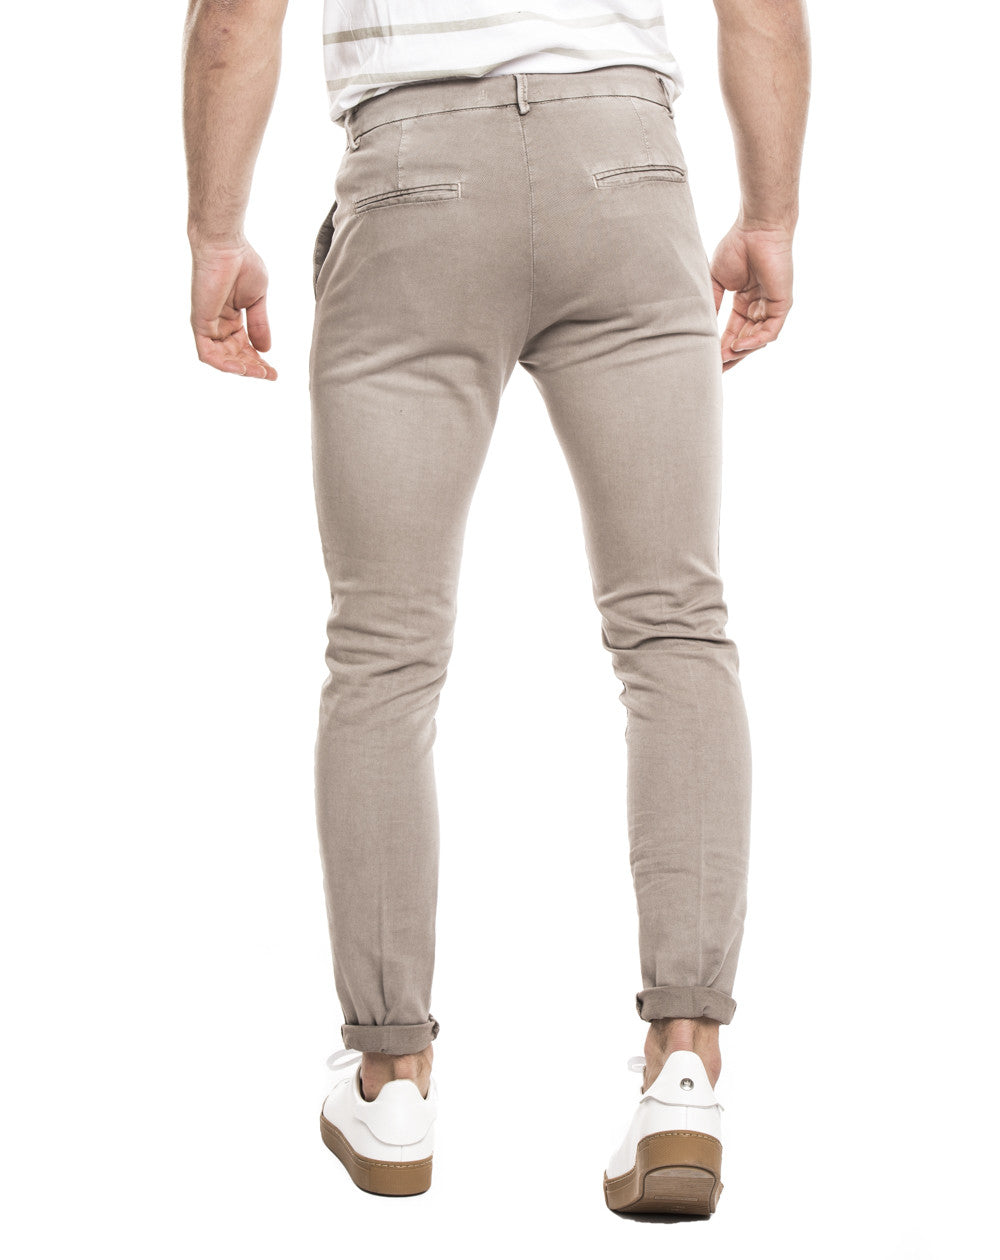 MEN'S CLOTHING | CASUAL BEIGE PANTS | PANTS FOR MEN | BOTTOMS | TROUSERS | COTTON | MADE IN ITALY | SLIM FIT | NOHOW FOR CASUAL OUTFITS | NOHOW